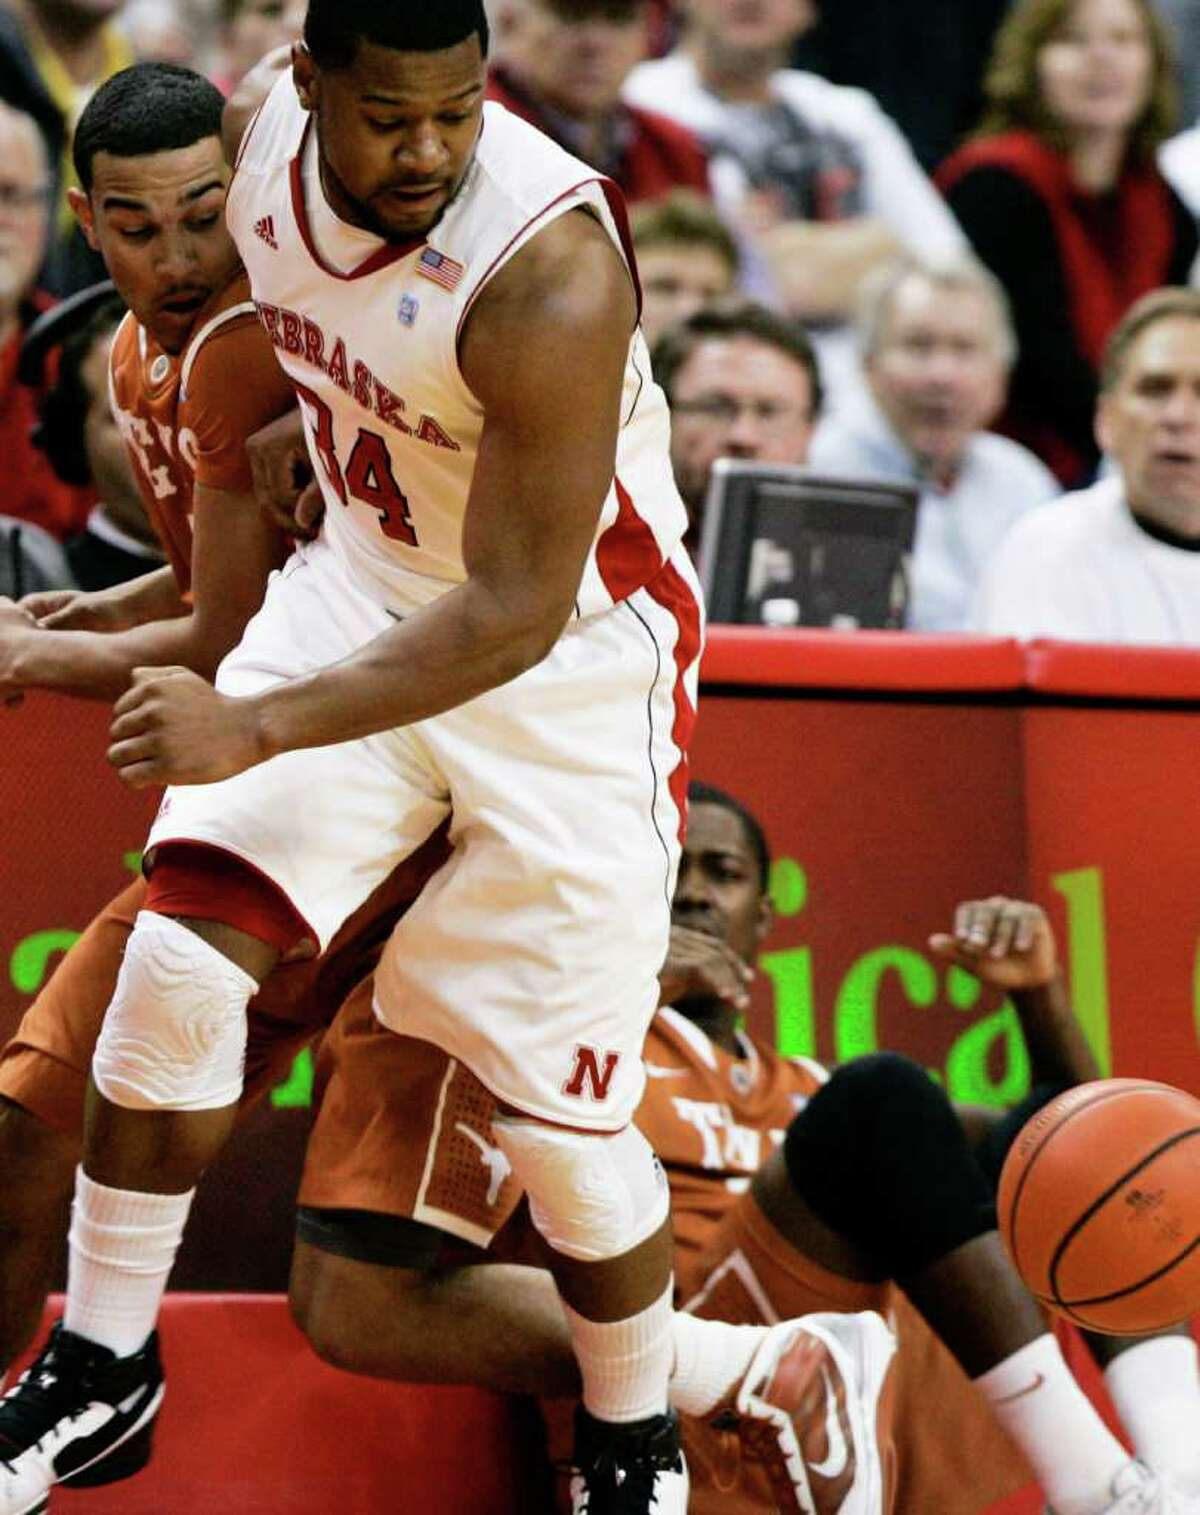 Texas' Cory Joseph (left) and Nebraksa's Lance Jeter chase after a loose ball during the first half in Lincoln, Neb., on Saturday, Feb. 19, 2011.